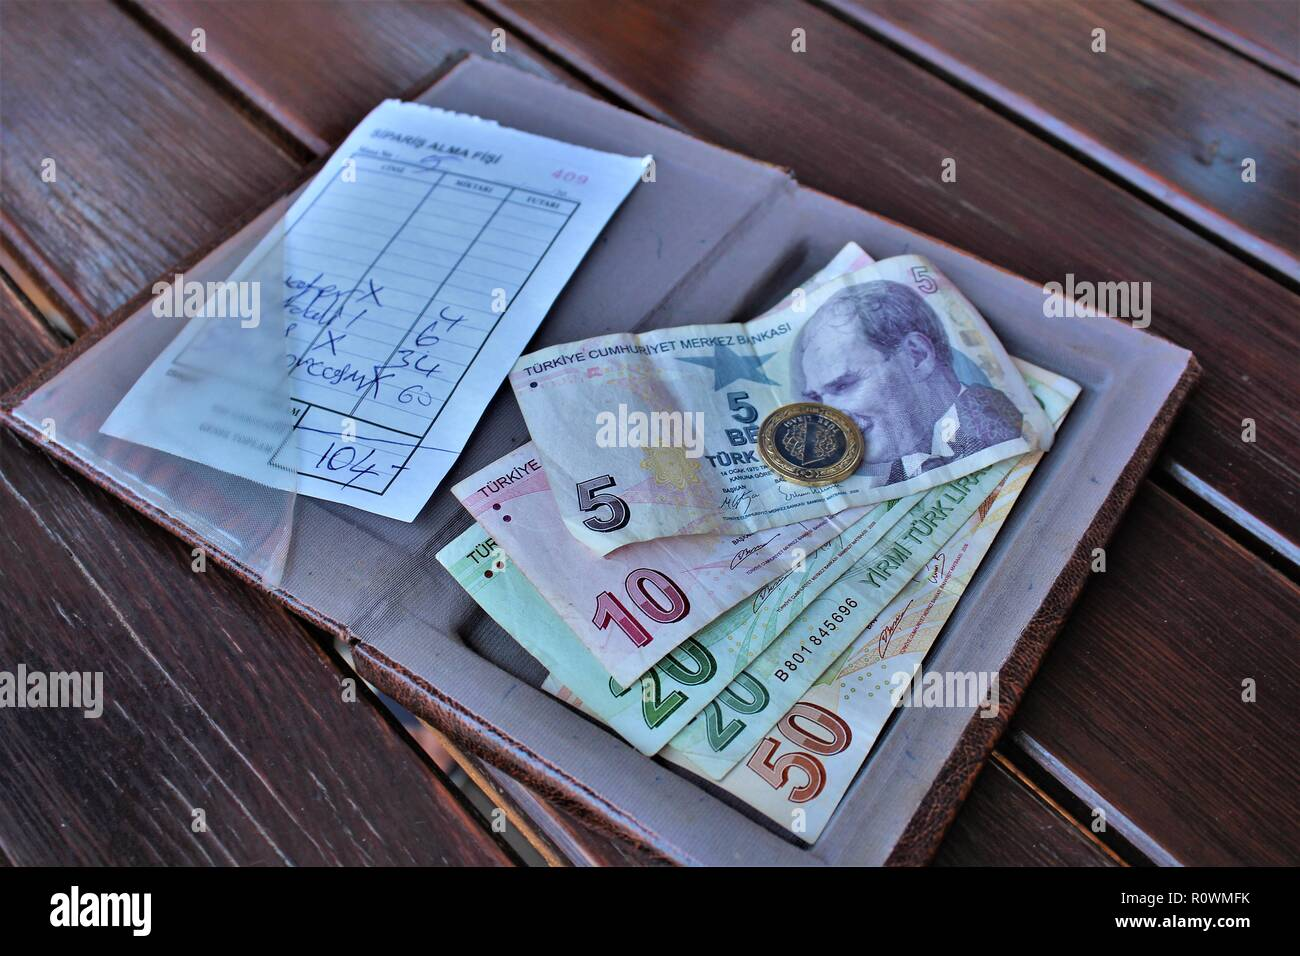 Dalyan, Turkey - July 7th 2018: Turkish Lira currency being used to pay a restaurant bill. Stock Photo